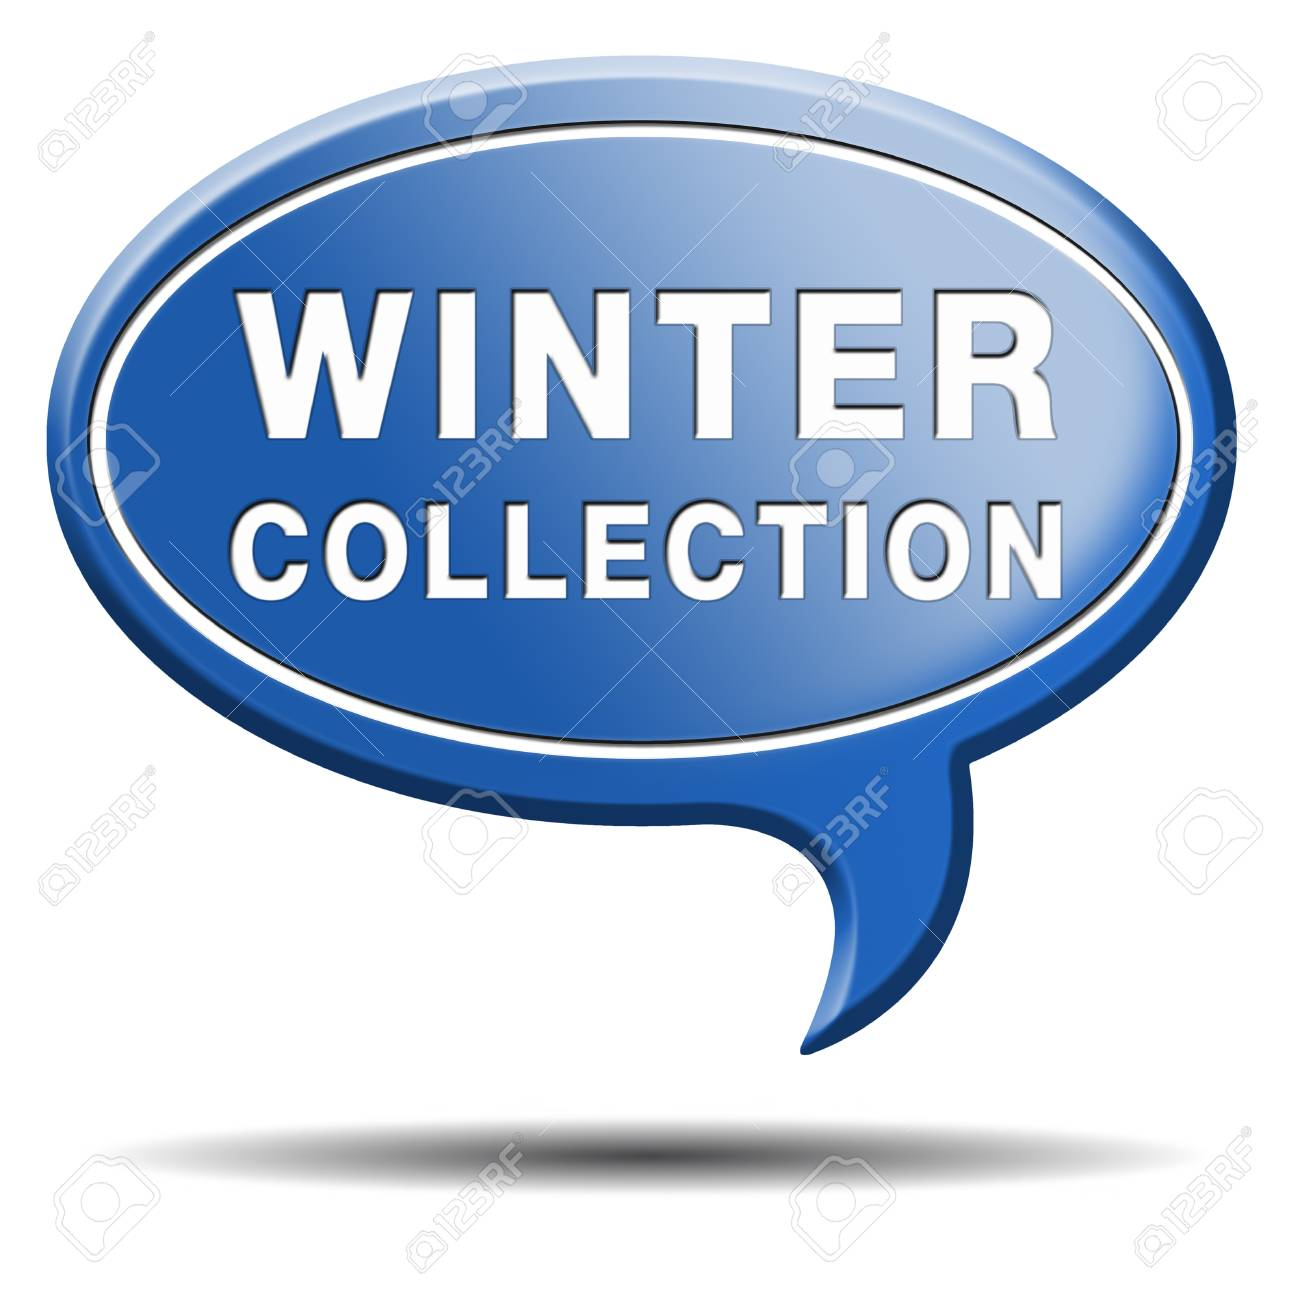 winter collection new latest fashion style icon or label Stock Photo - 23101231